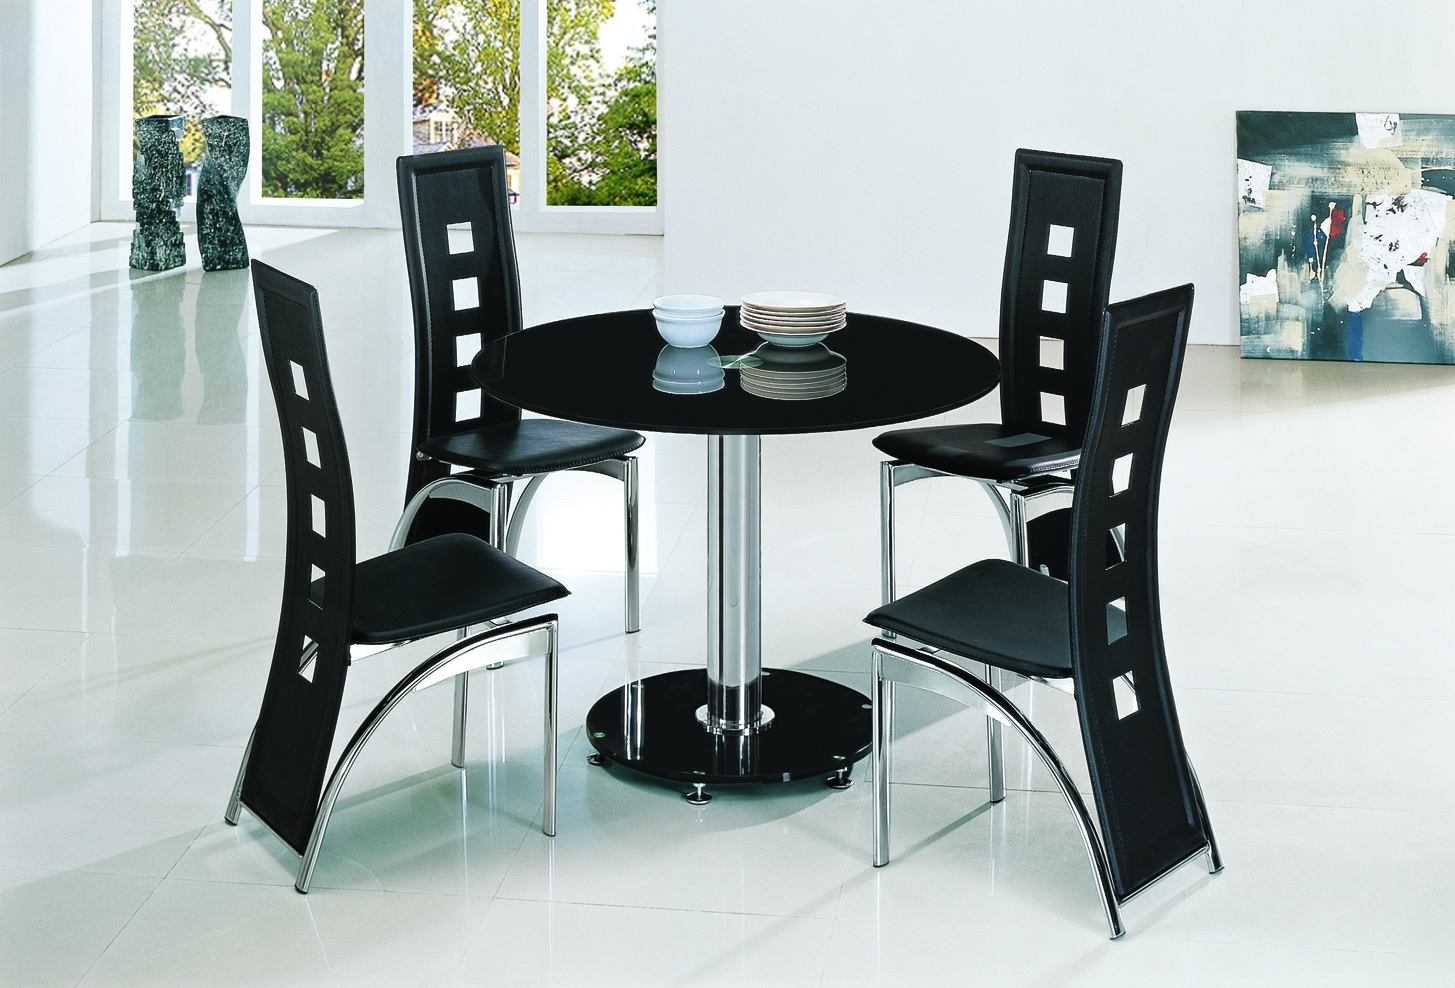 Most Current Small Round Dining Table With 4 Chairs Throughout Small Planet Glass Dining Table And 4 Ashley Chairs – Implex Supplies (View 15 of 25)